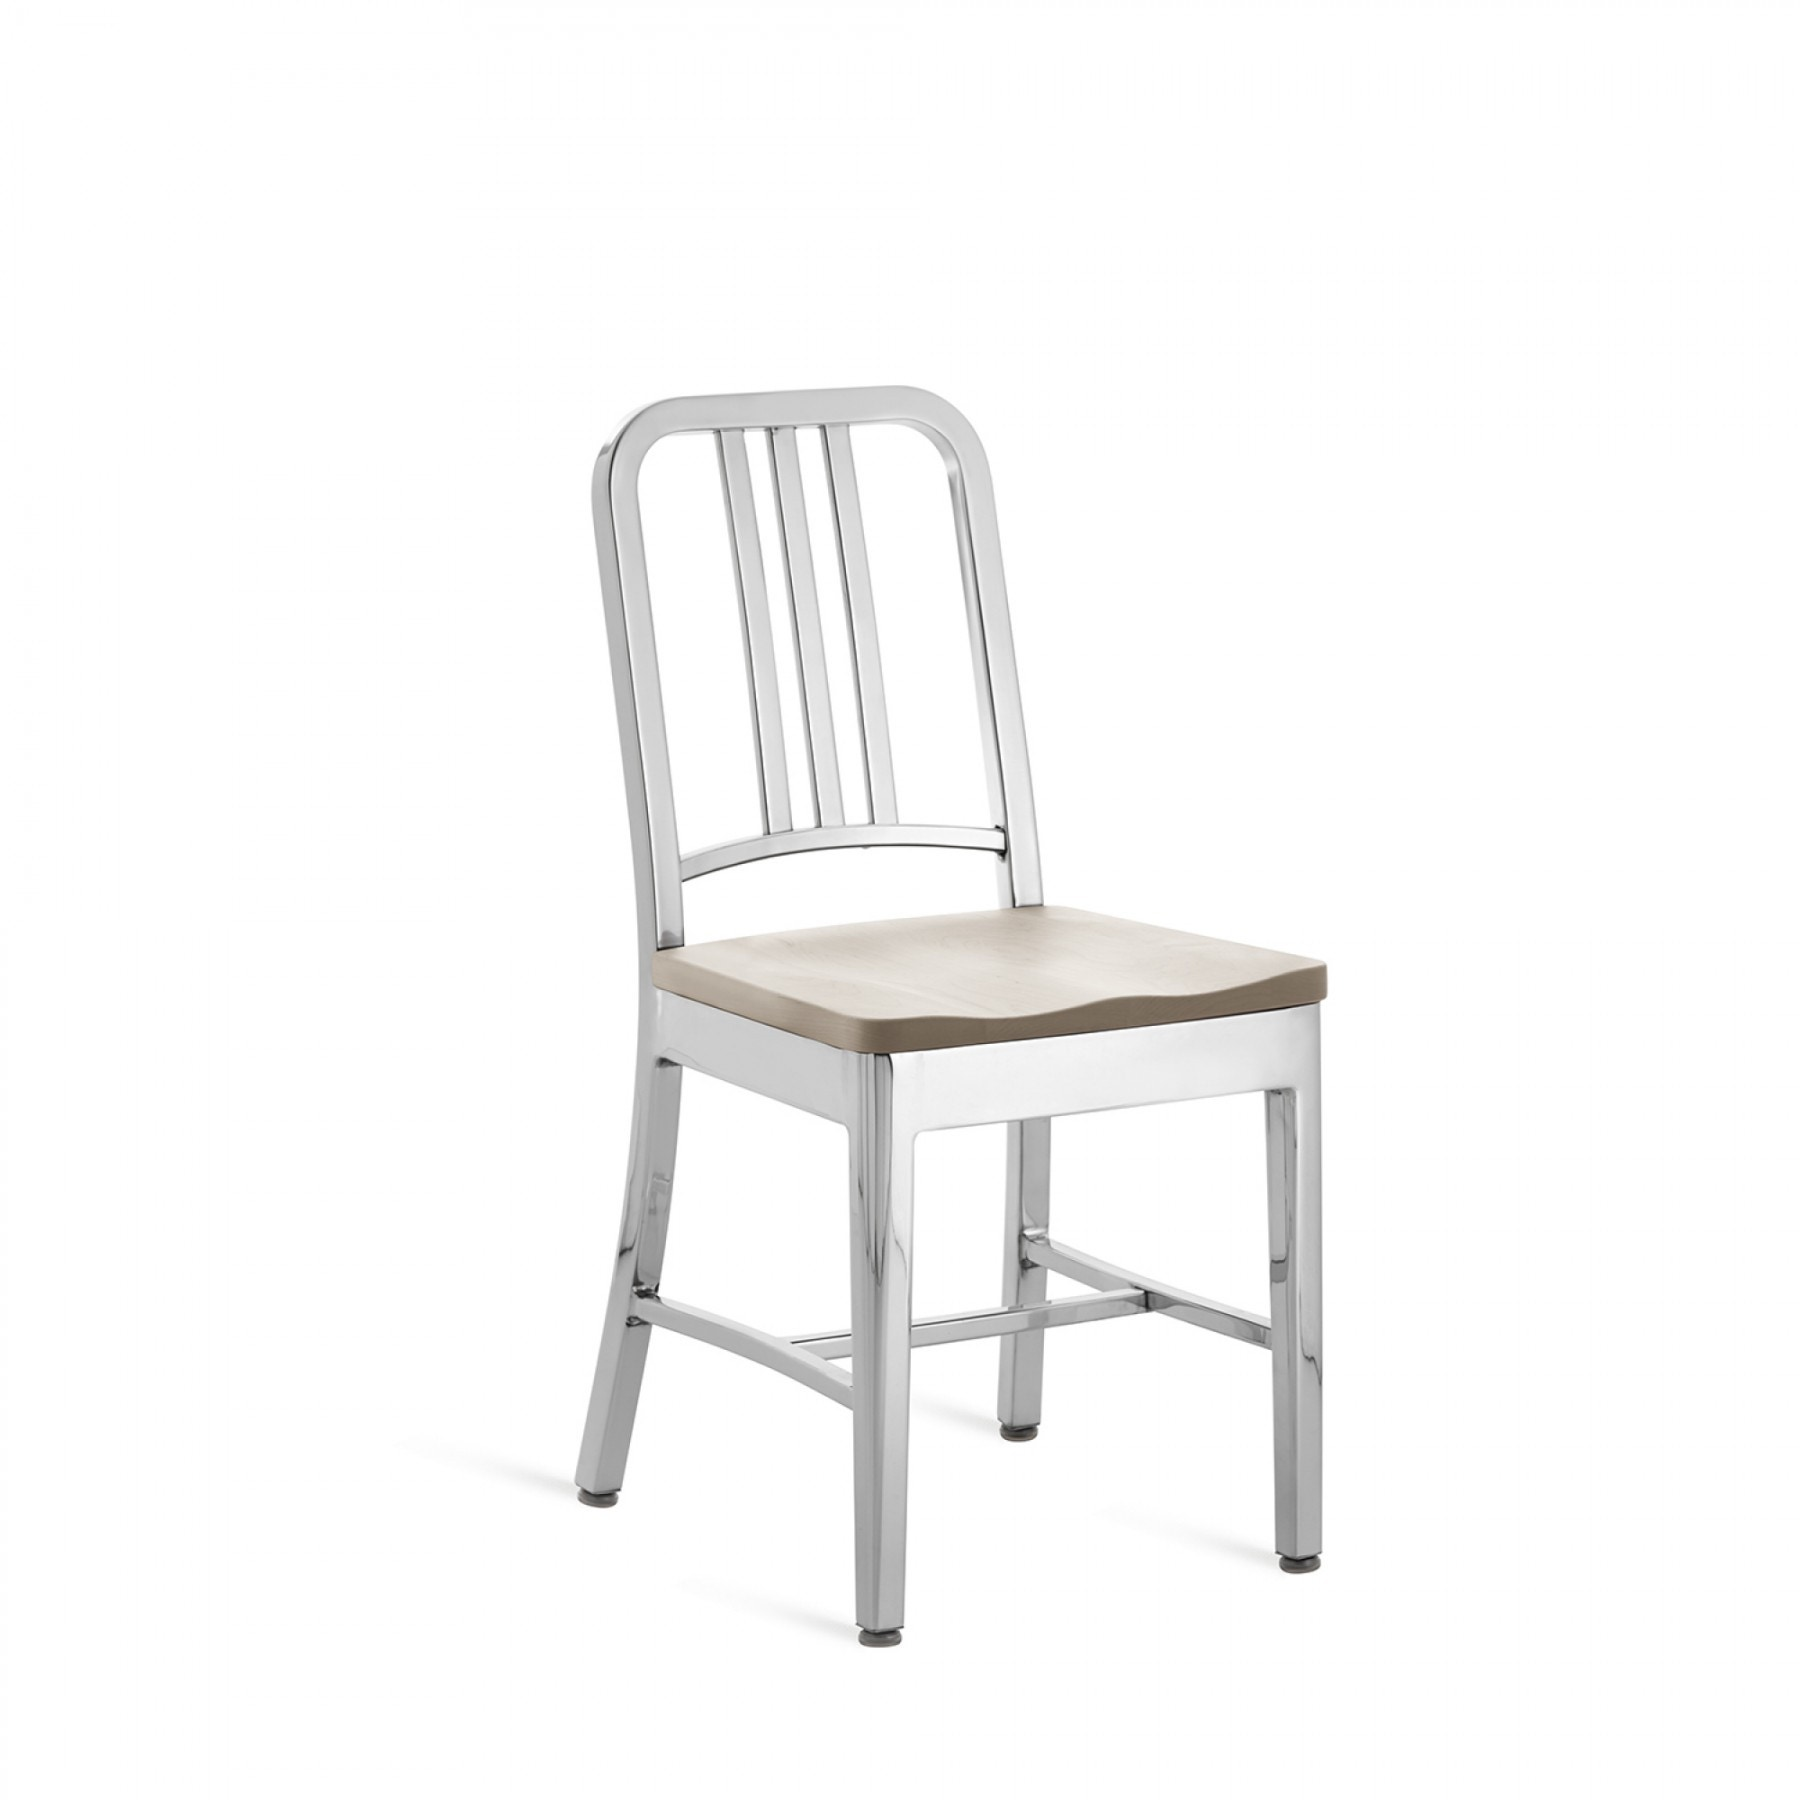 ... Emeco Navy Chair With Natural Wood Seat. 1